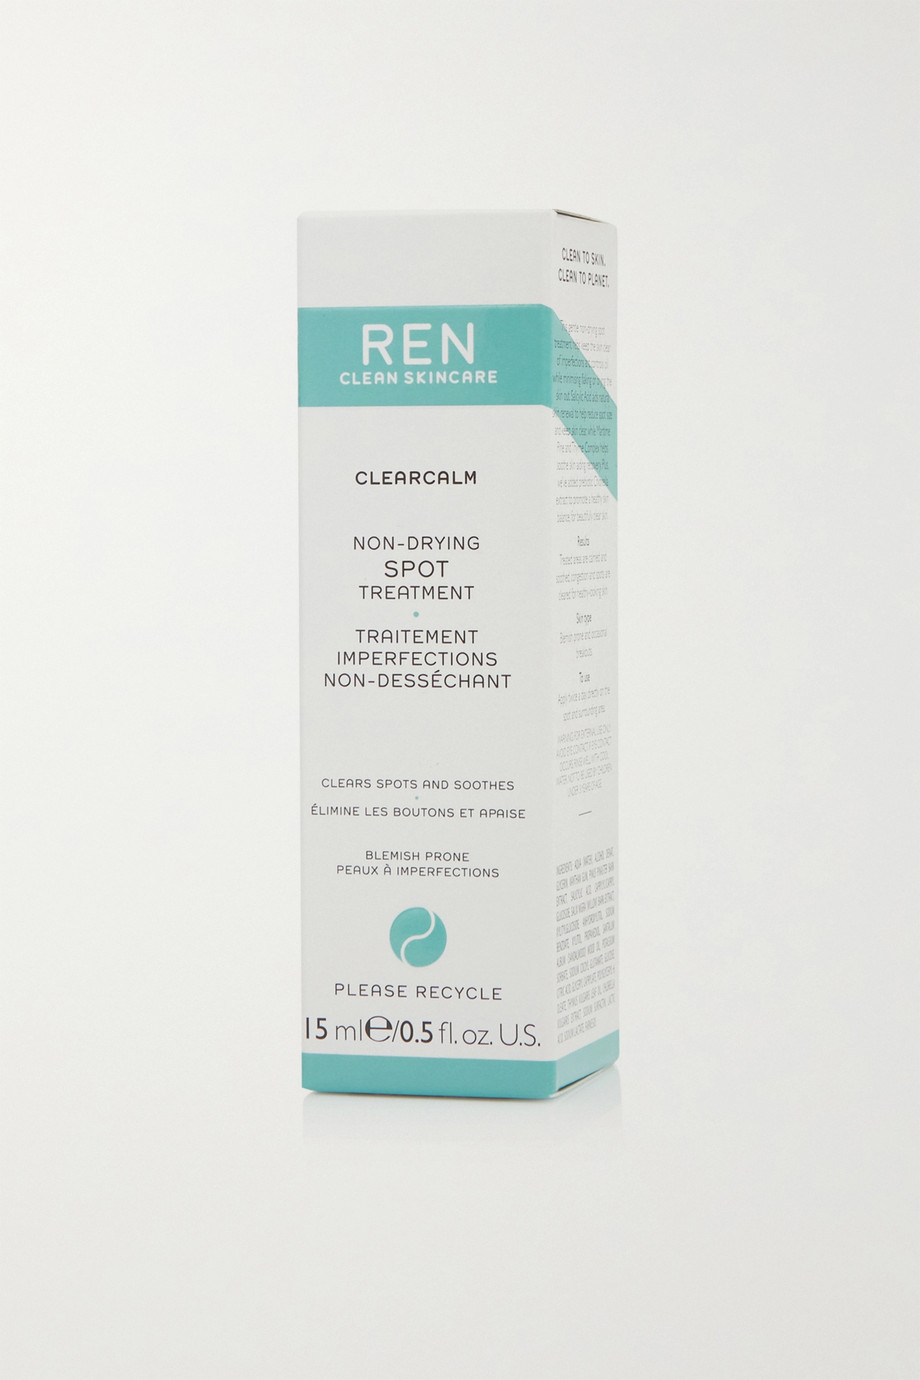 REN CLEAN SKINCARE ClearCalm Non-Drying Spot Treatment, 15ml